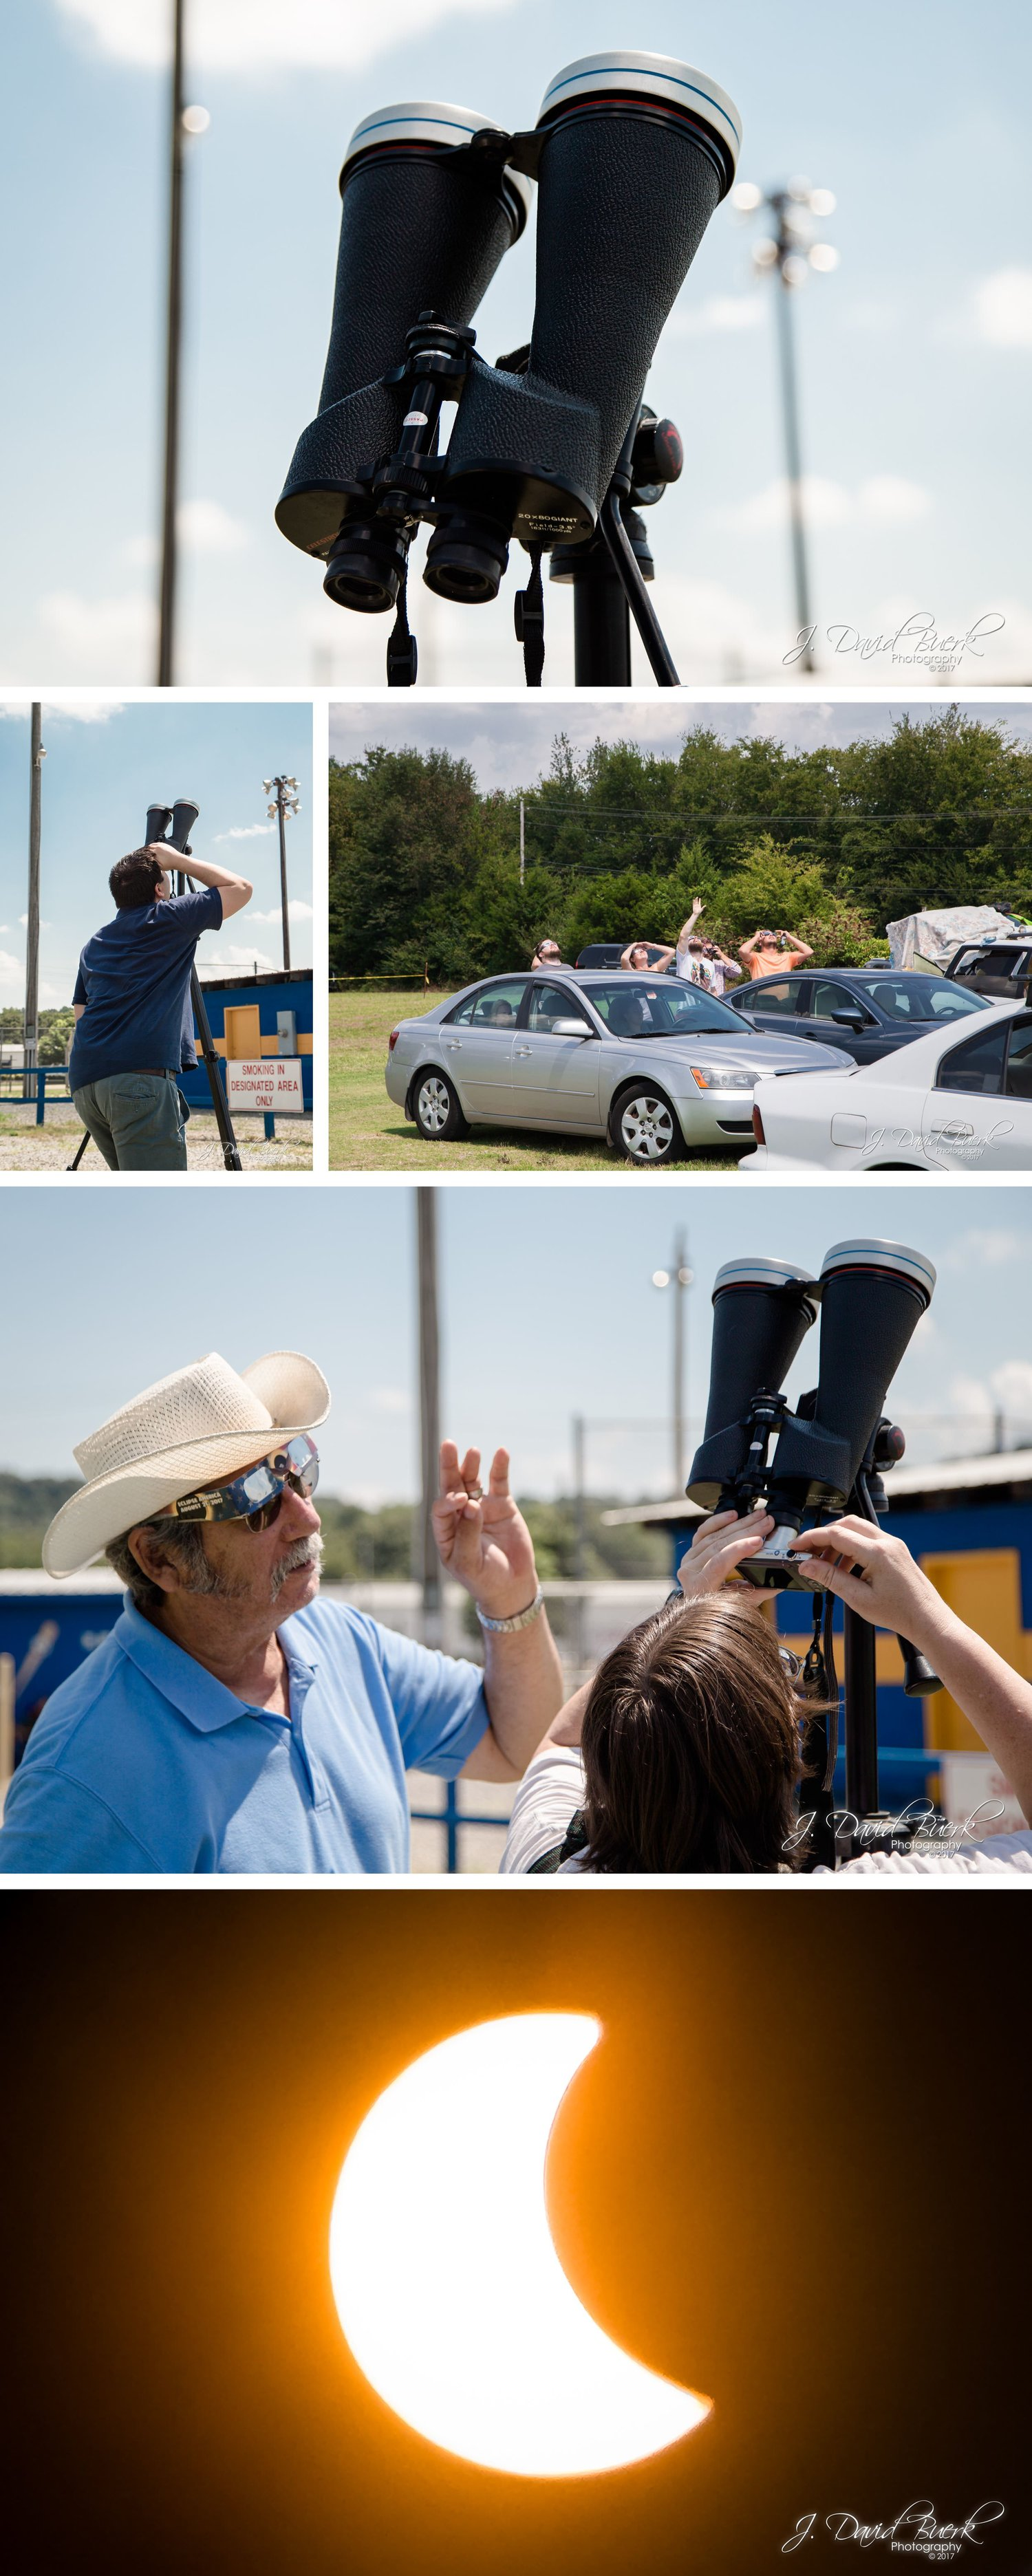 Blog J David Buerk Photography 200 Eclipse Fuel Filter Location As The Partial Began First Change I Noticed Was No Longer Squinting To See Im Unlucky In That My Eyes Are Pretty Sensitive